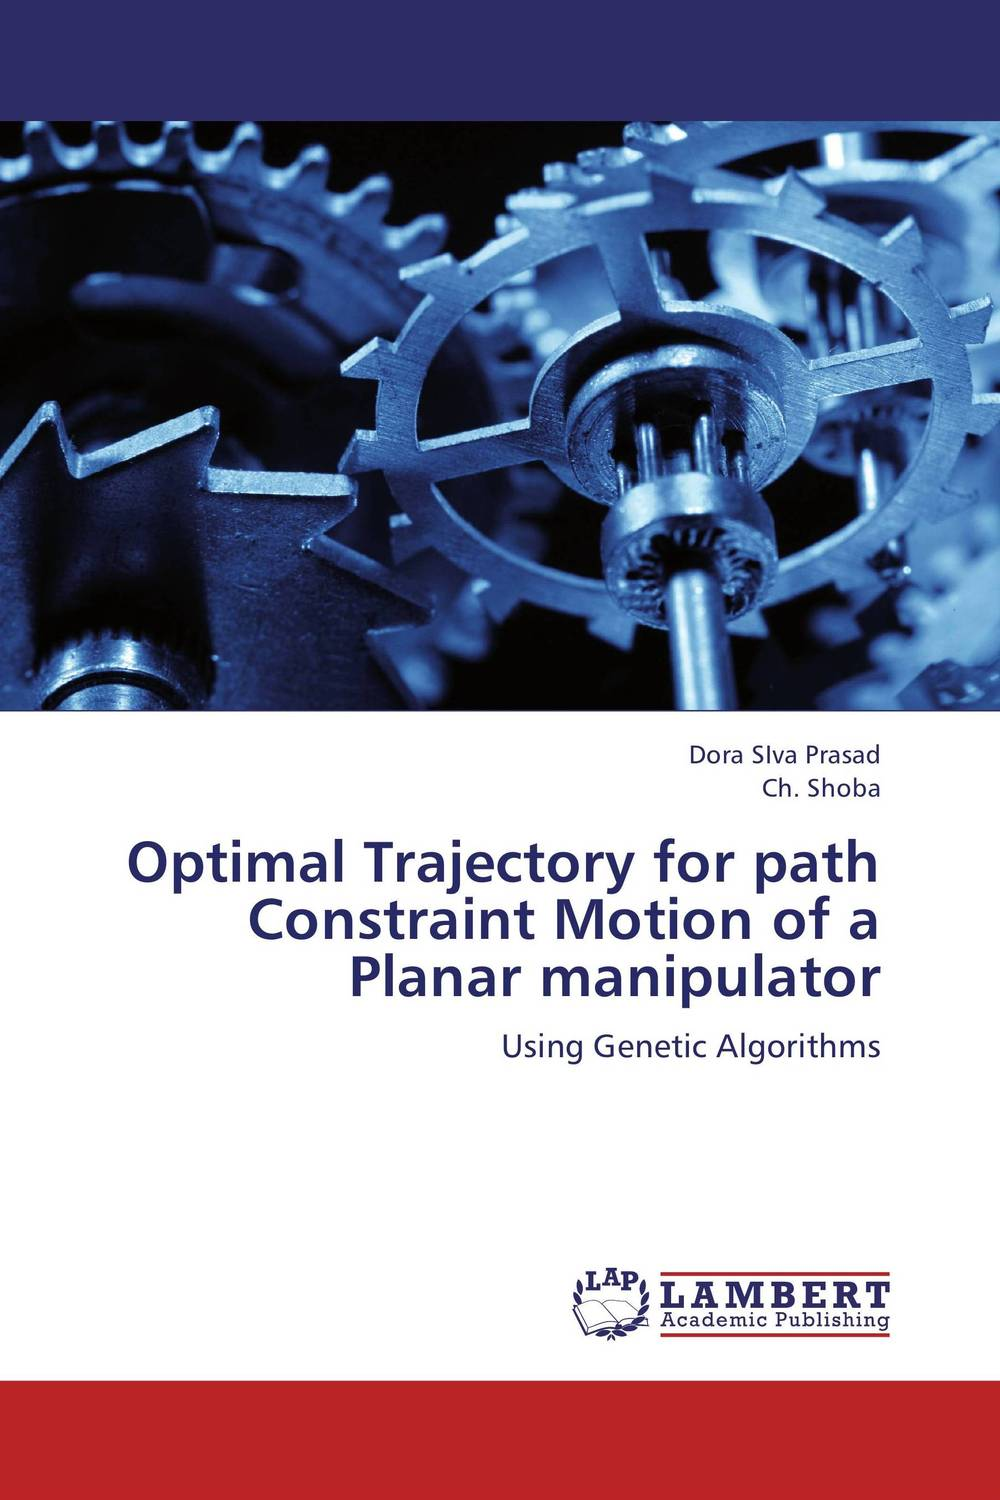 Optimal Trajectory for path Constraint Motion of a Planar manipulator optimized–motion planning